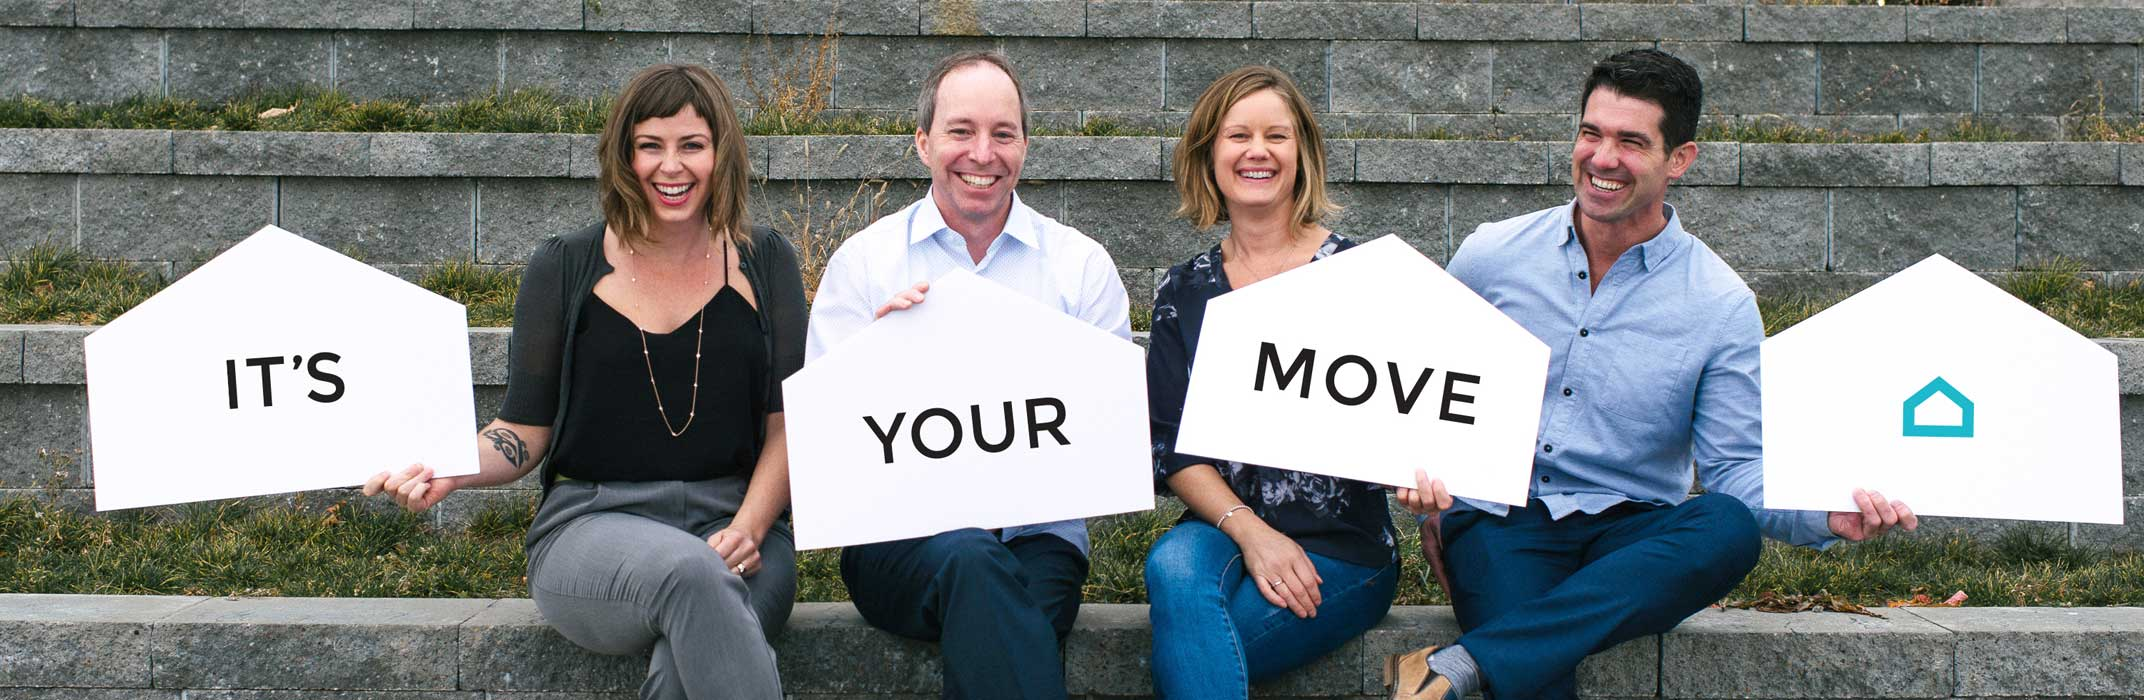 It's your move real estate team